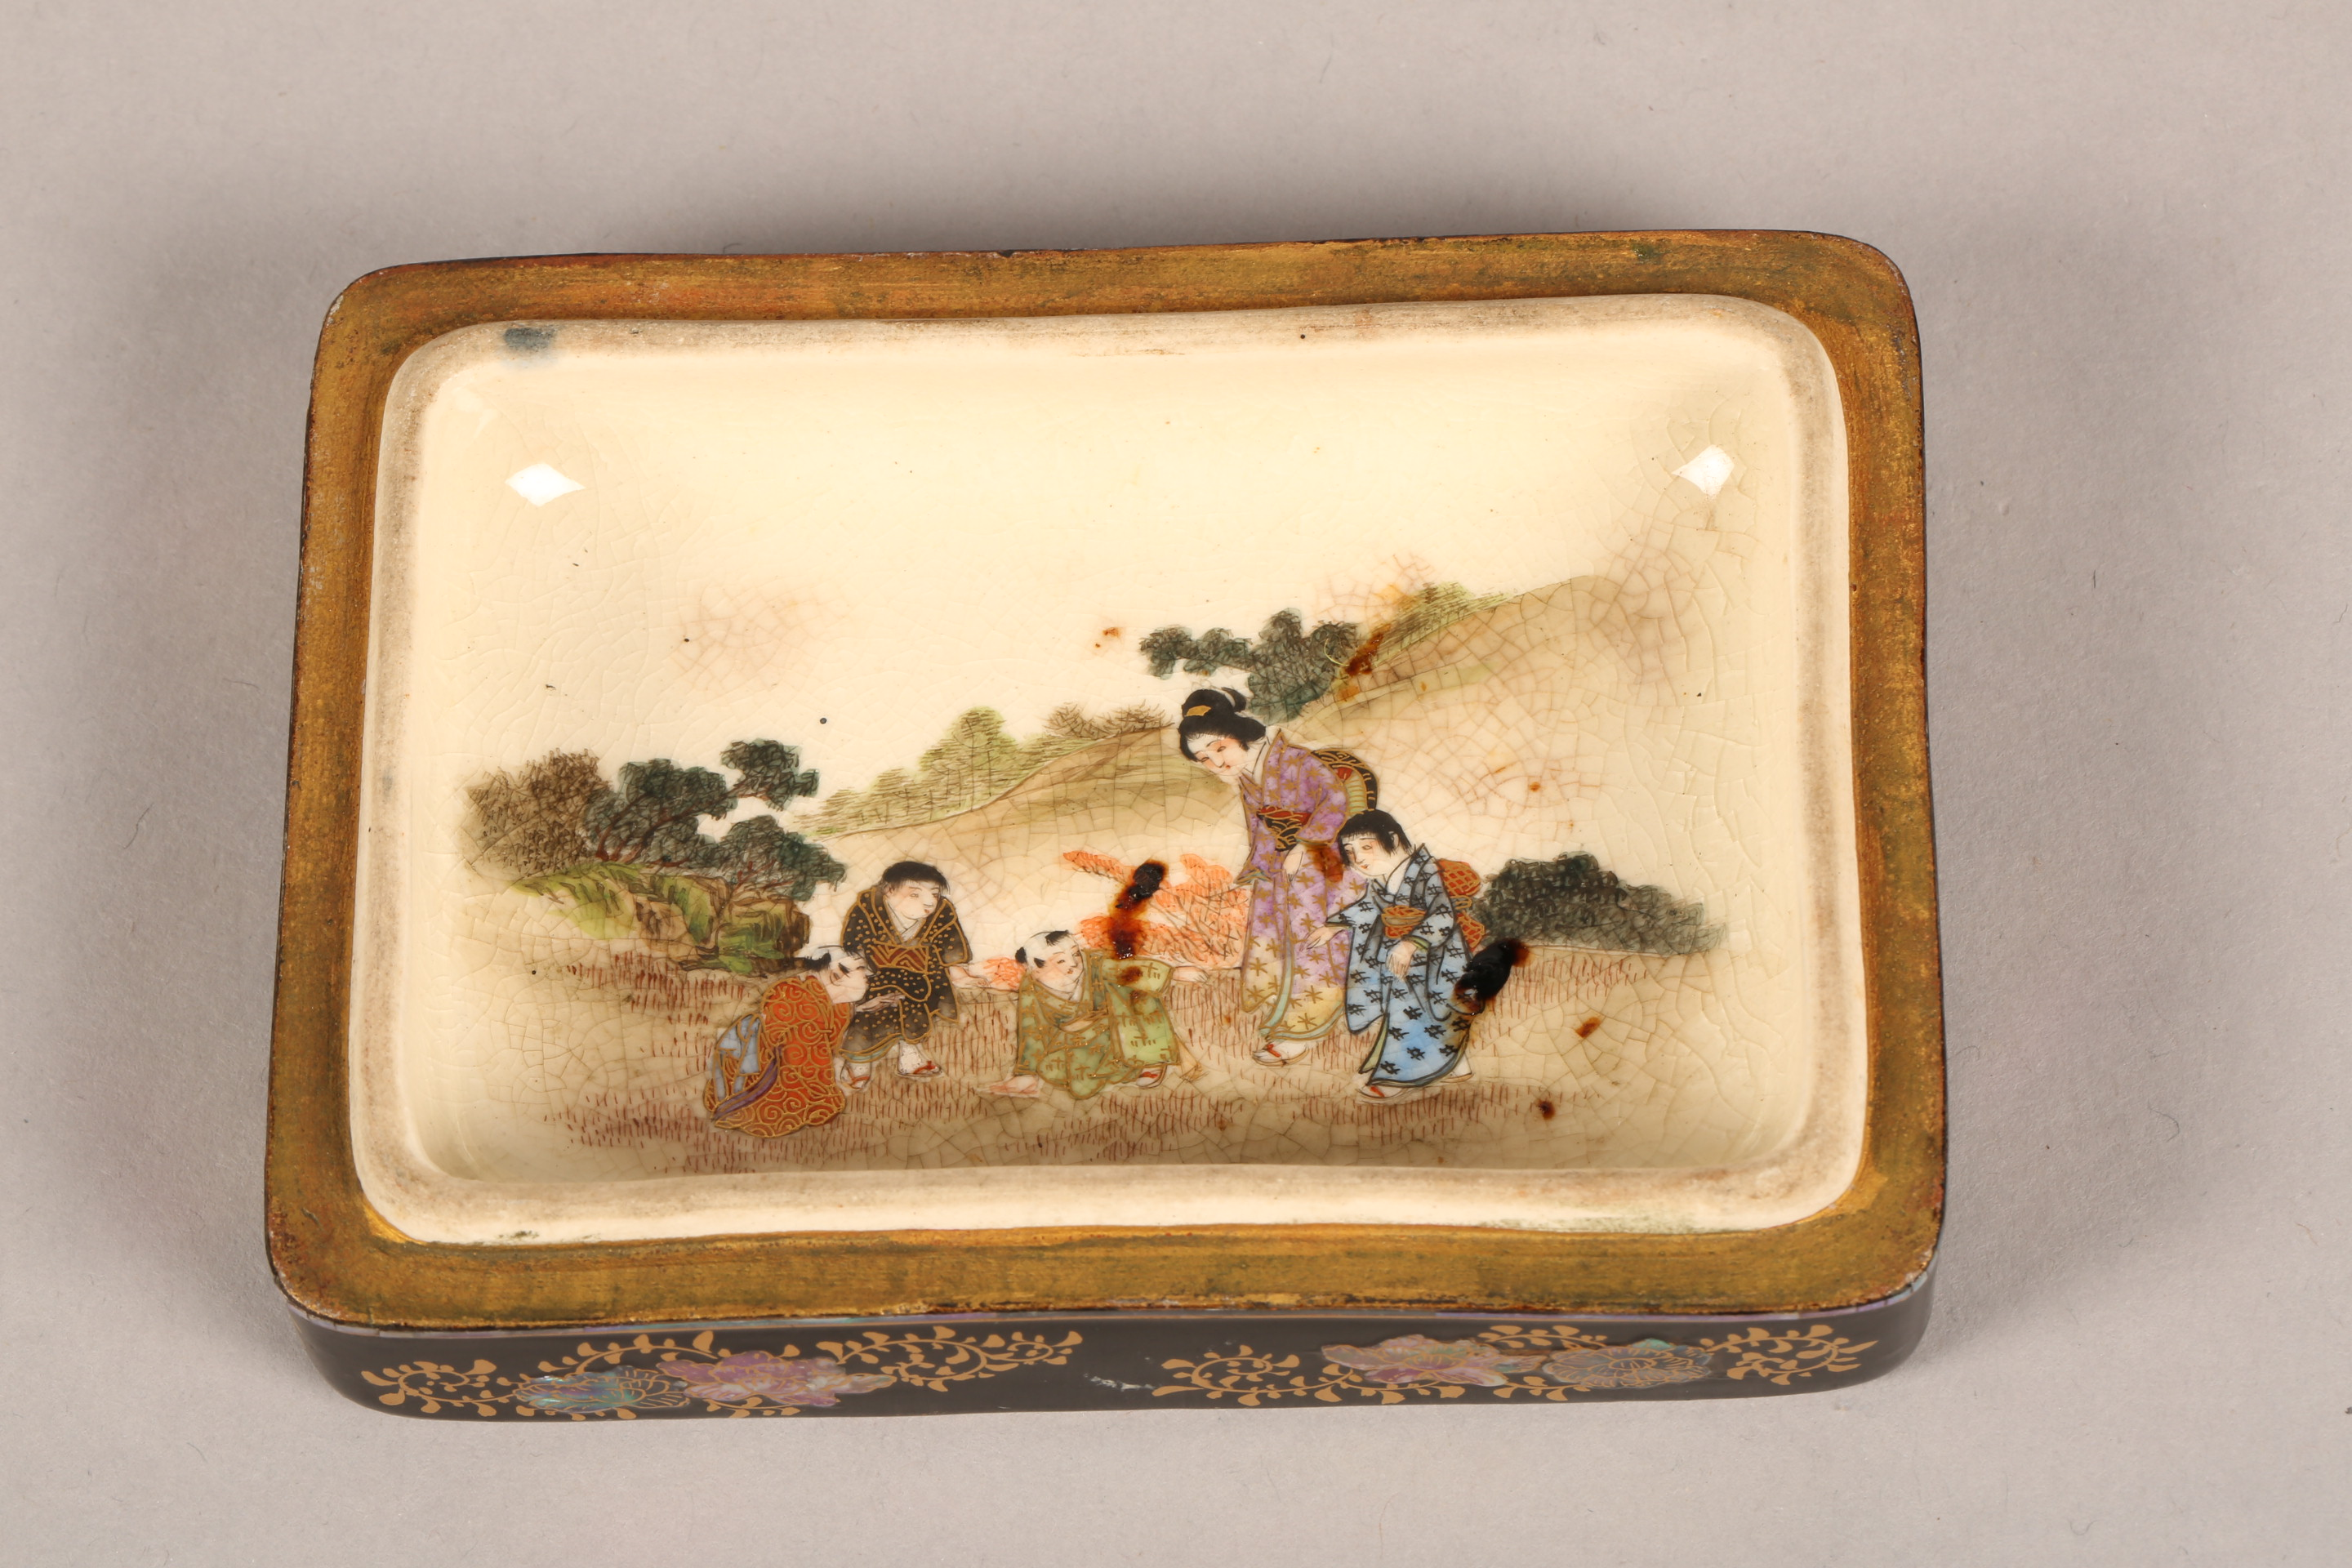 Japanese satsuma rectangular trinket box and cover, decorated internally and externally with - Image 9 of 10